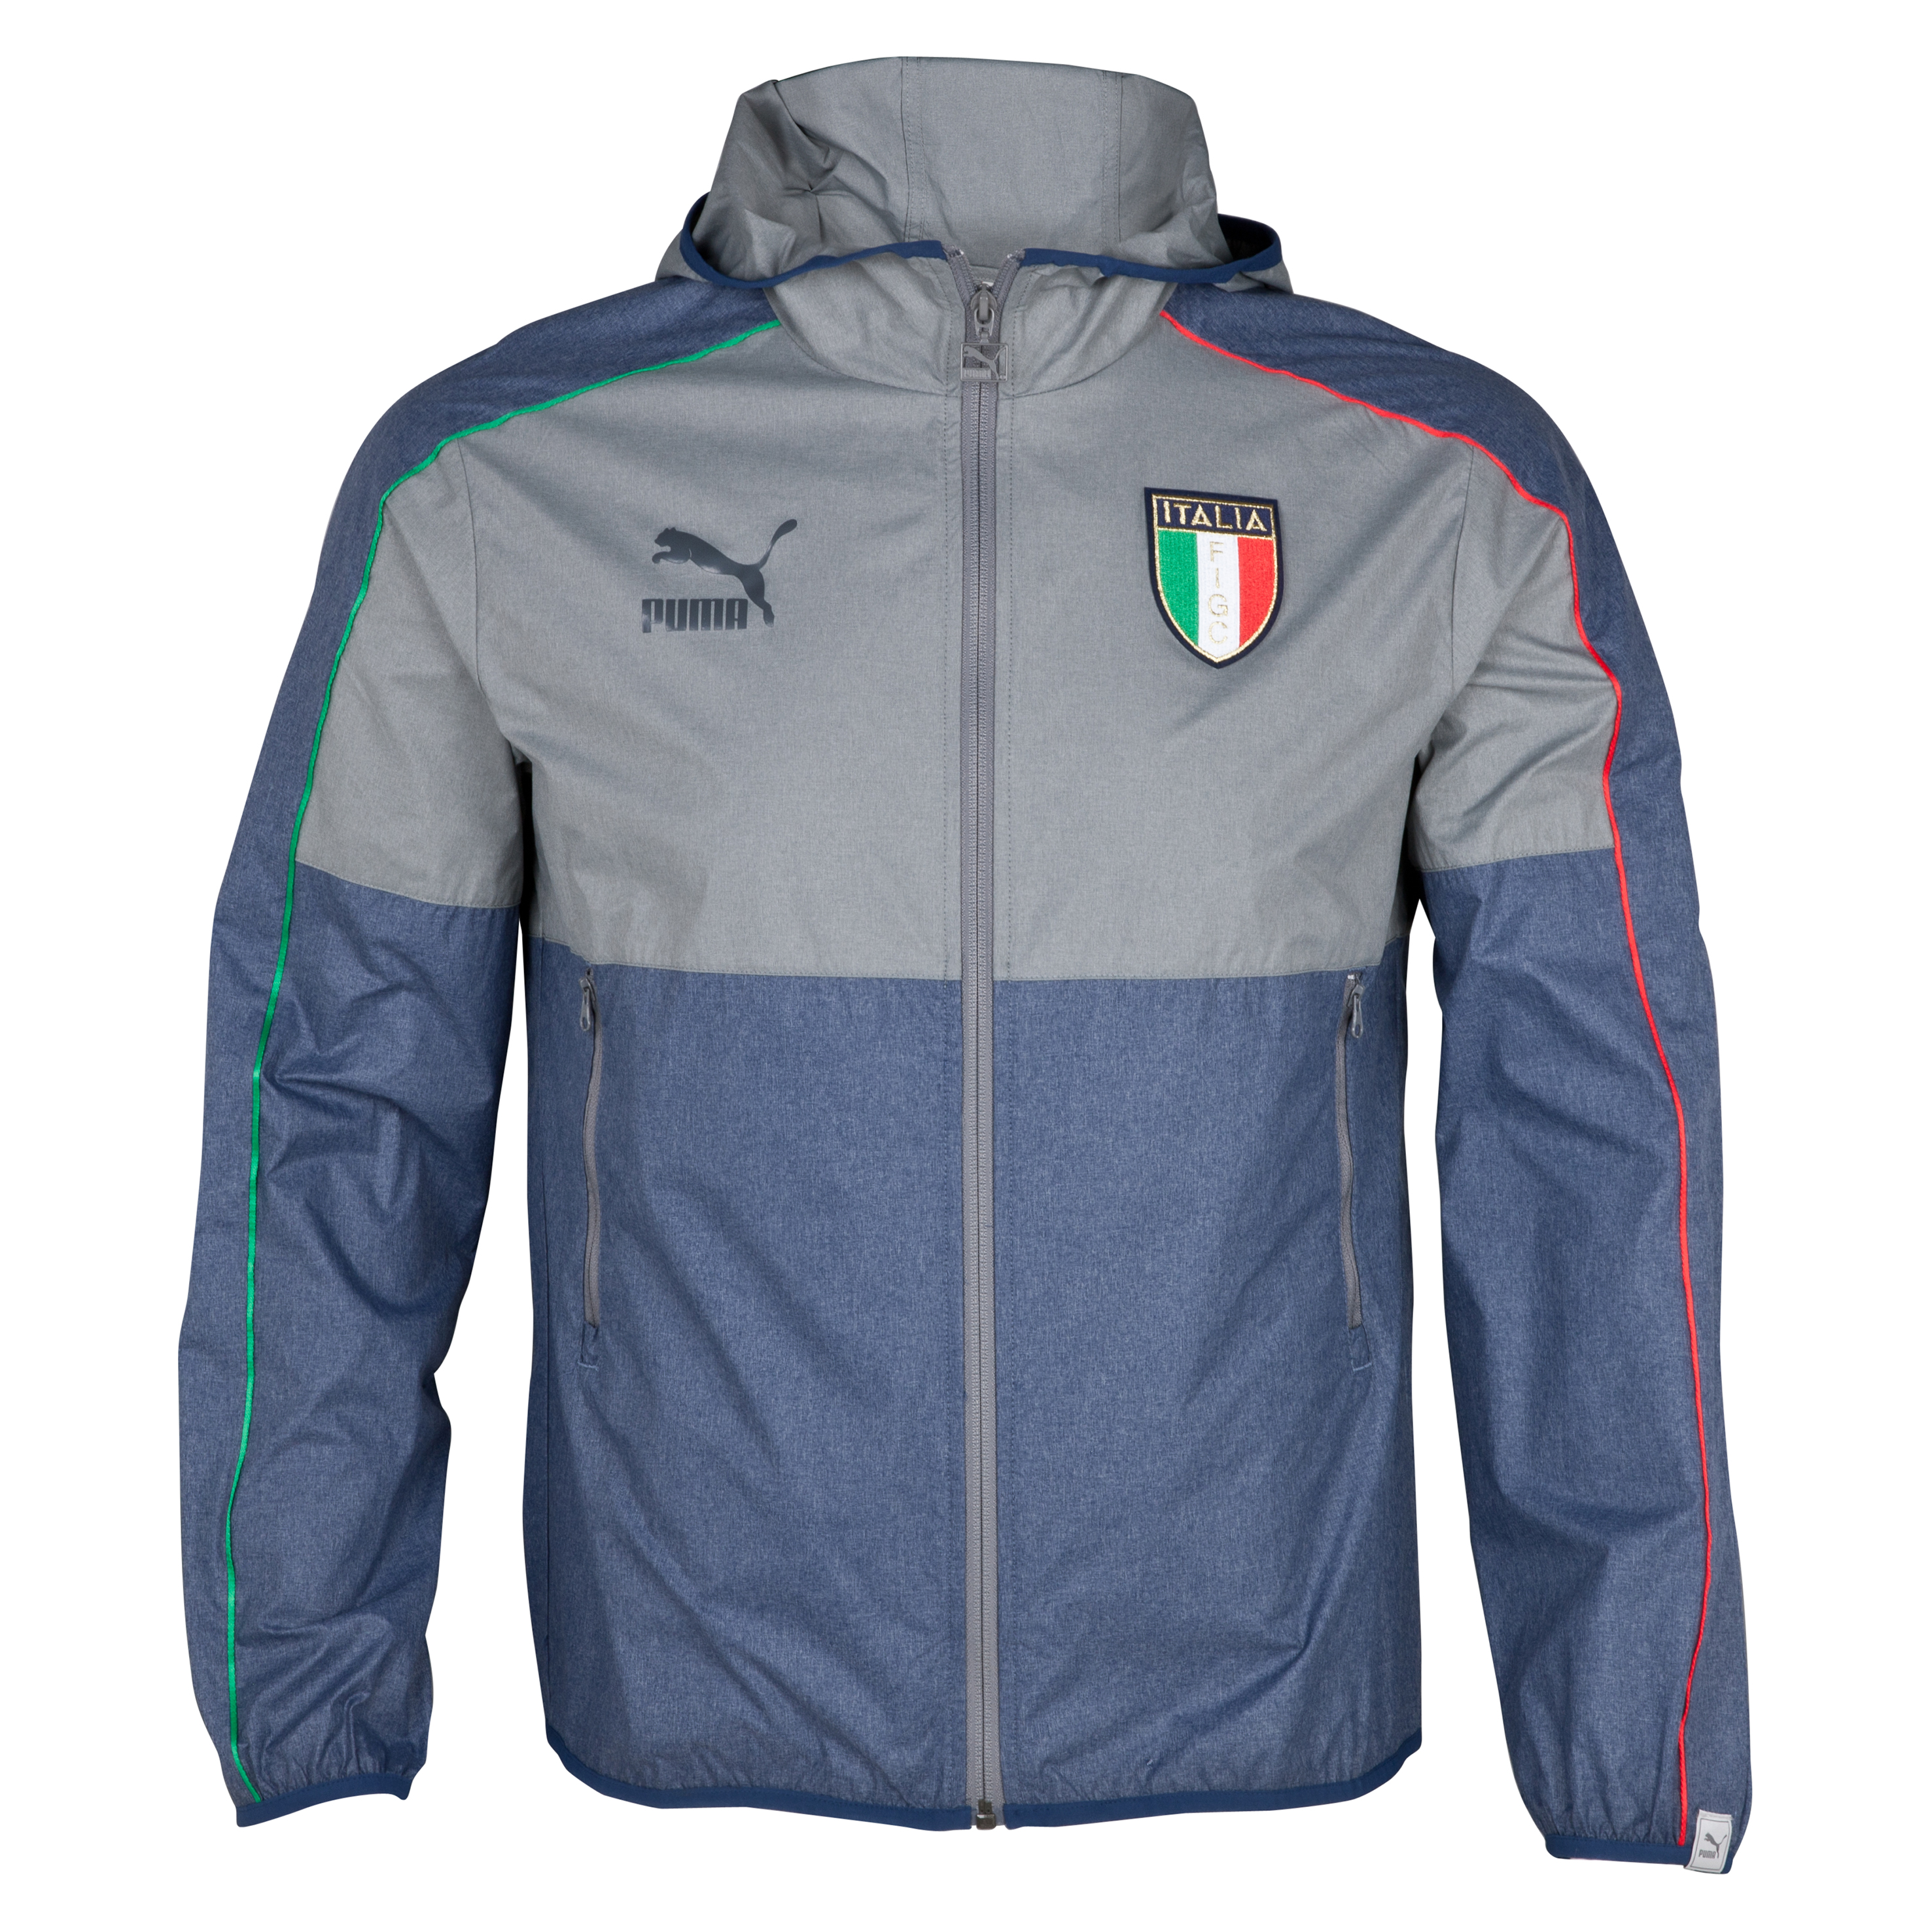 Puma Italy T7 Lightweight Jacket - Dark Denim Heather/Medium Grey Heather